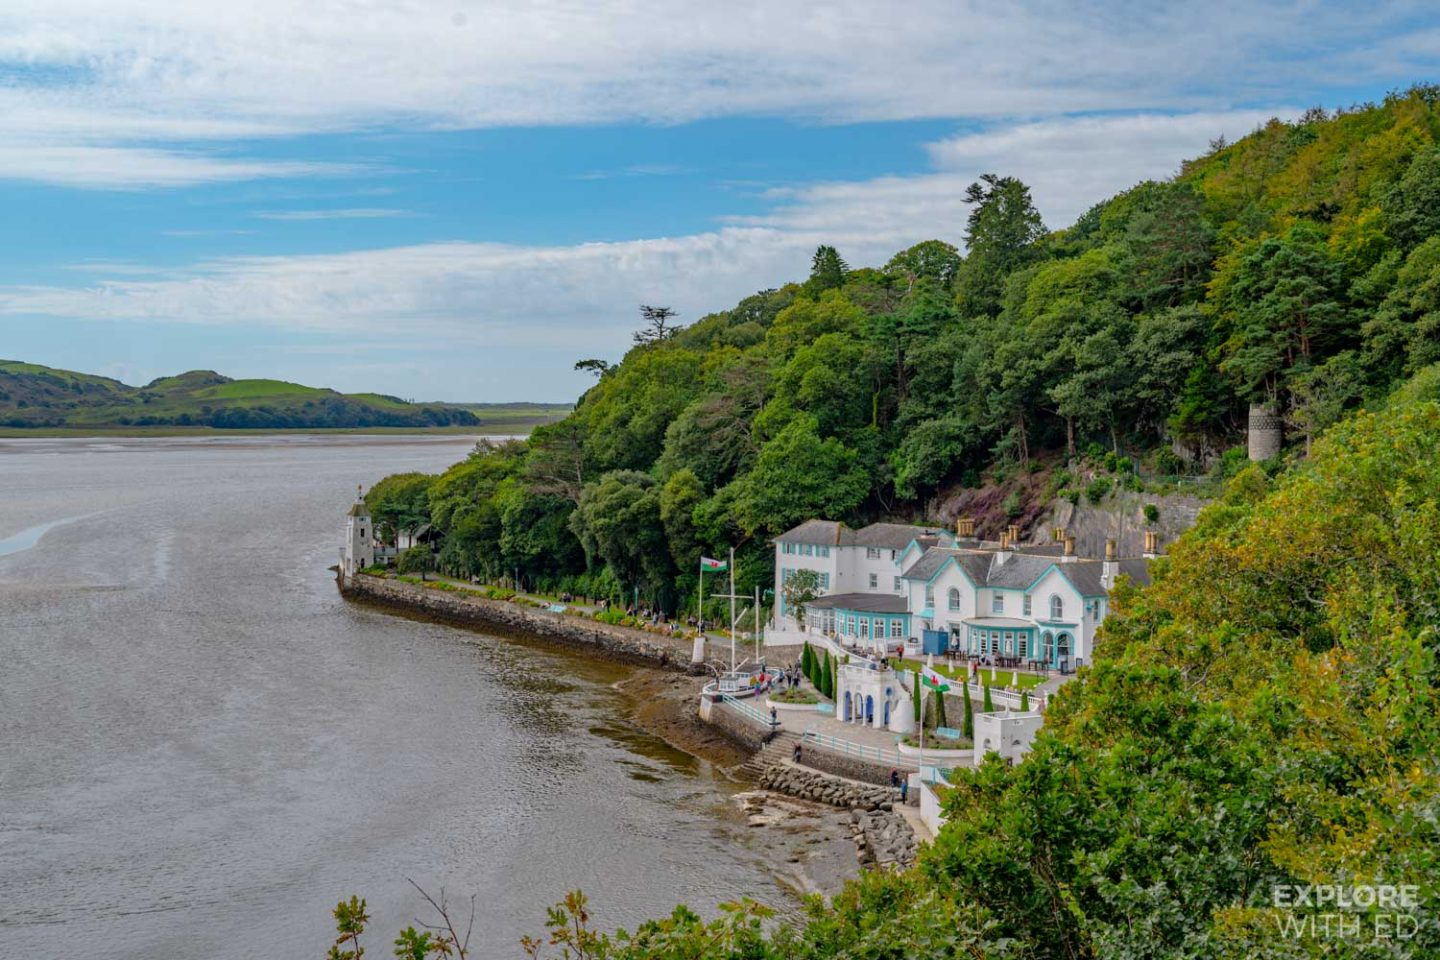 The Portmeirion Hotel and Terrace